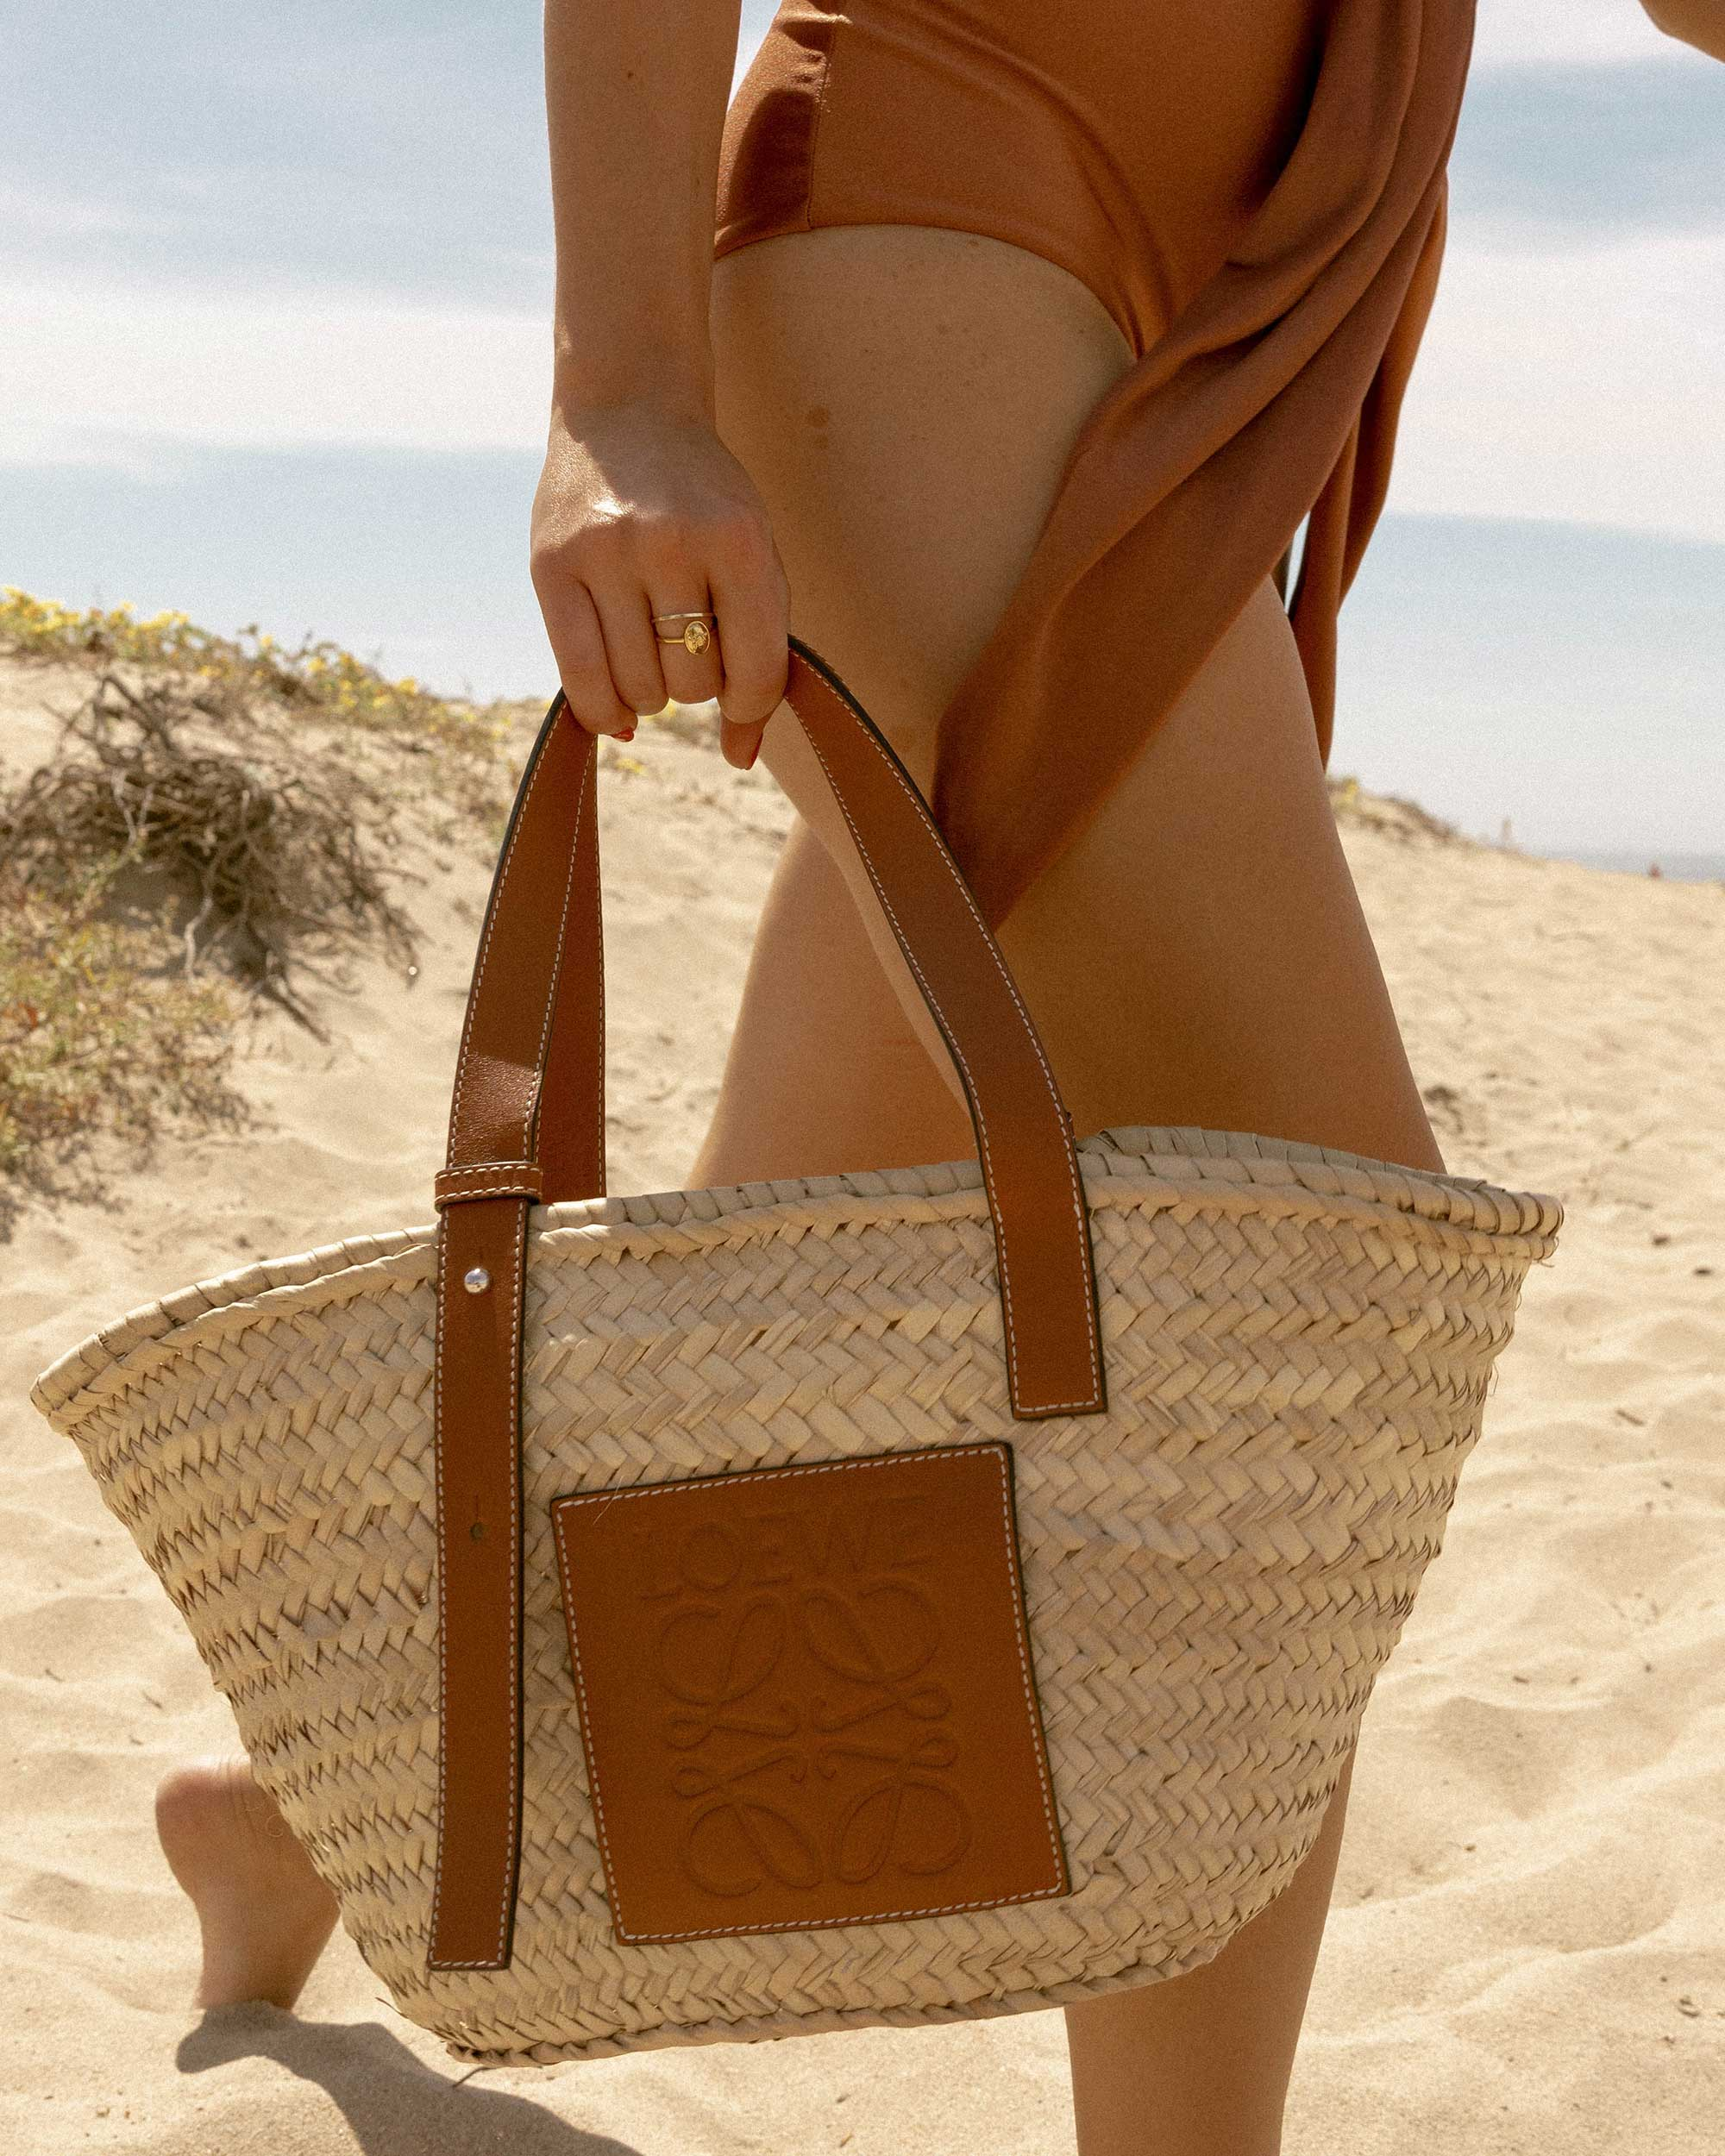 Sarah Butler of Sarah Styles Seattle wears Patbo solid brown belted swimsuit and Loewe Small Raffia Basket Tote Bag for Stylish one-piece swimsuit to wear to the beach | @sarahchristine -4.jpg